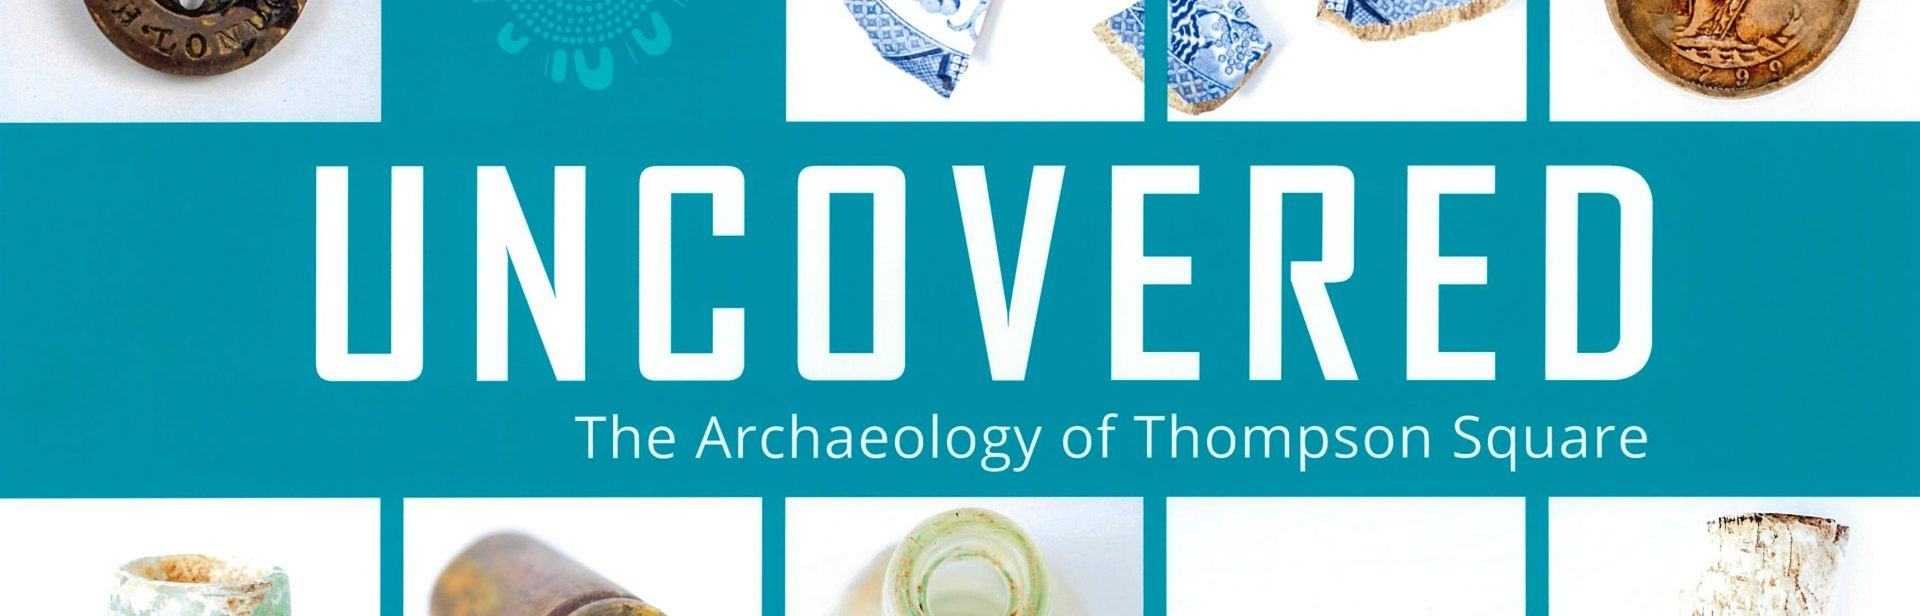 The Archaeology of Thompson Square